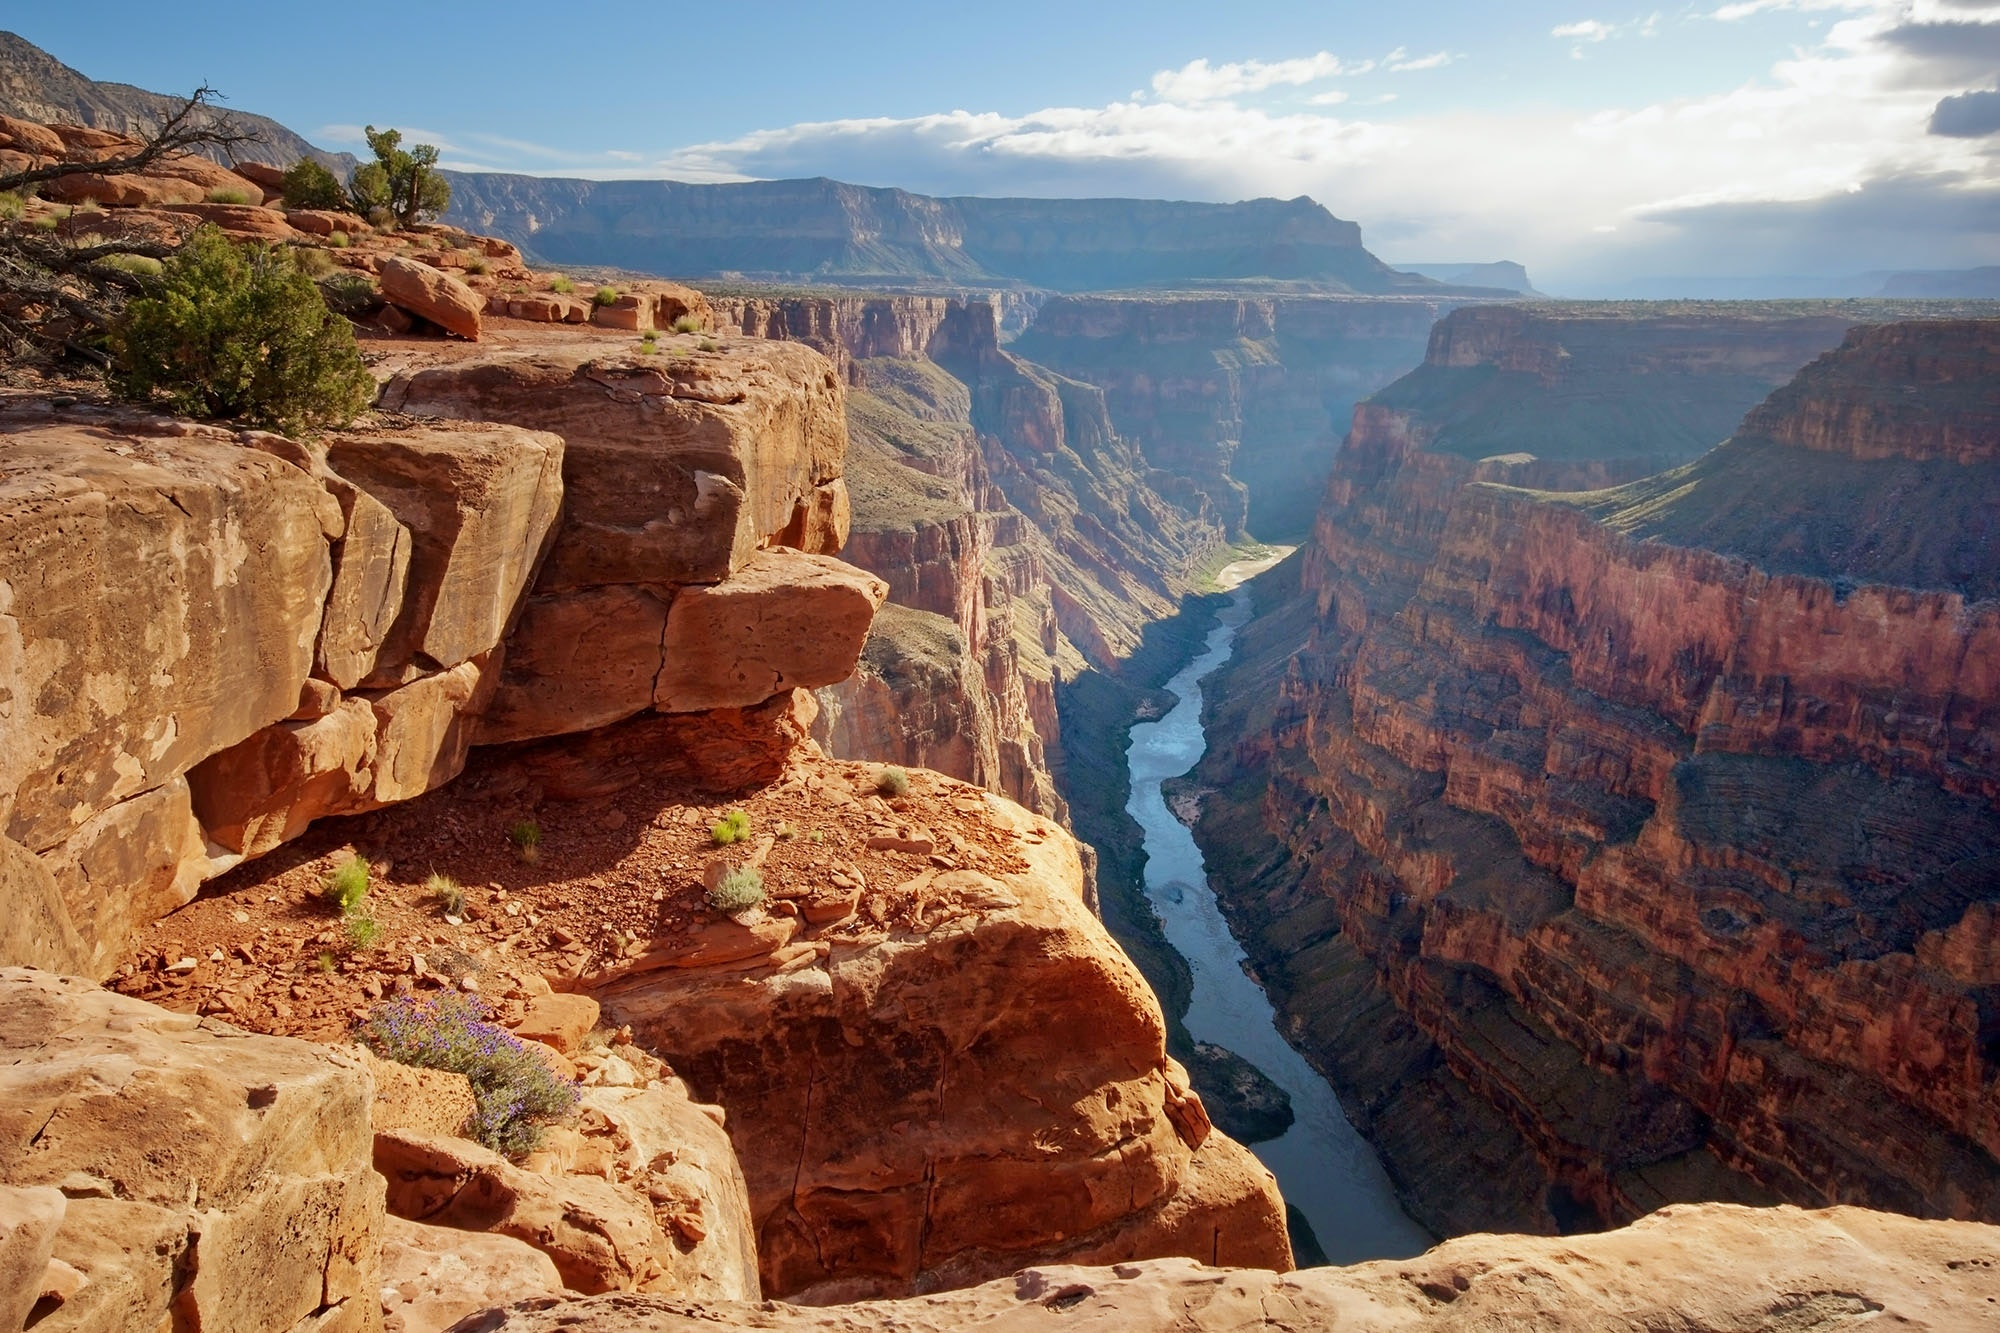 It took millions of years for the Colorado to wear down the surrounding landscape and create the Grand Canyon.